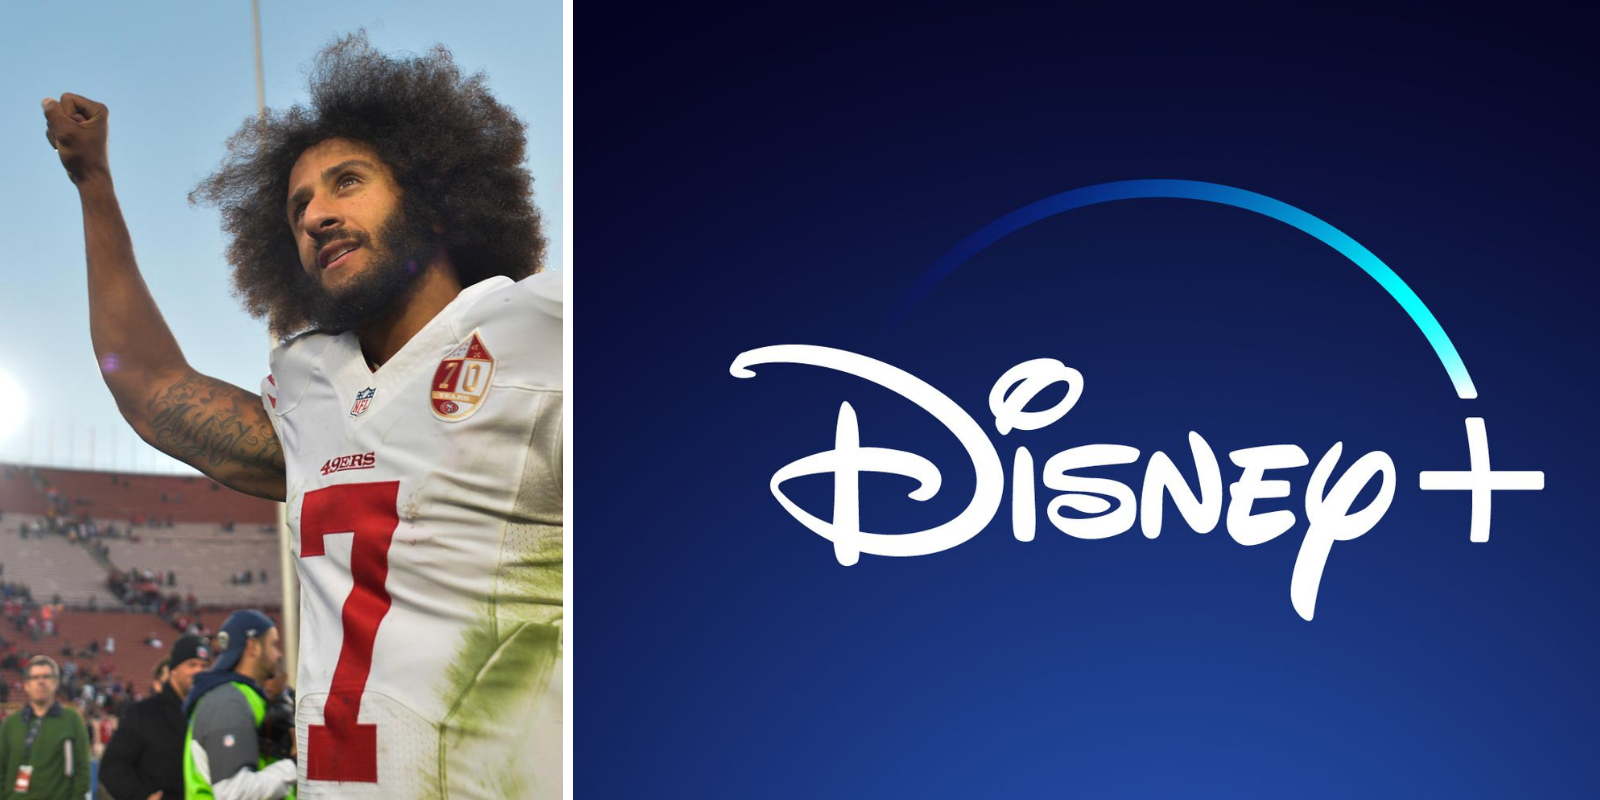 Disney rewards Colin Kaepernick's anti-Americanism with new 'social justice' docuseries